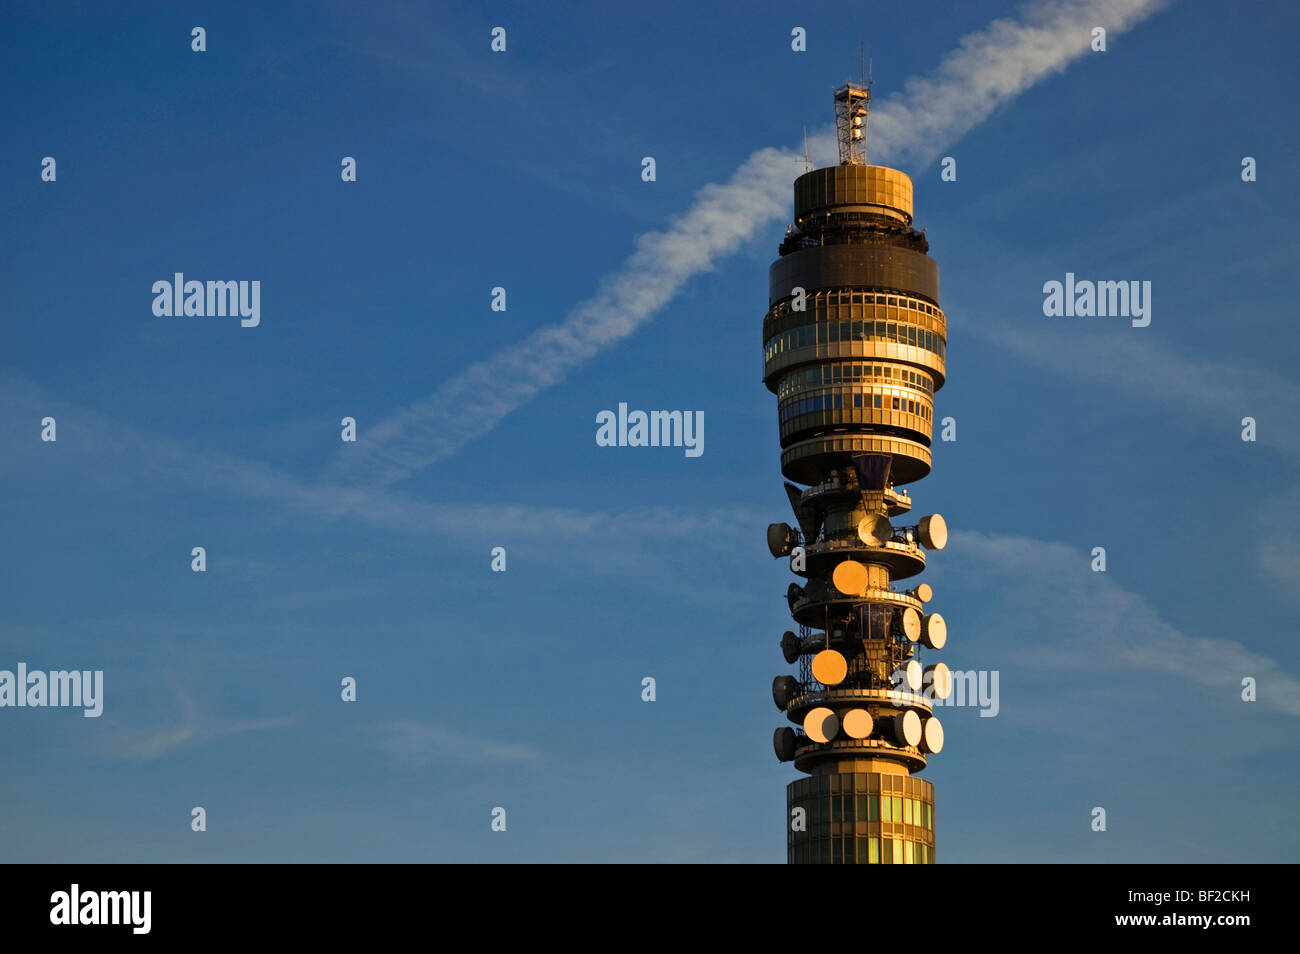 The Post Office Tower, London. - Stock Image